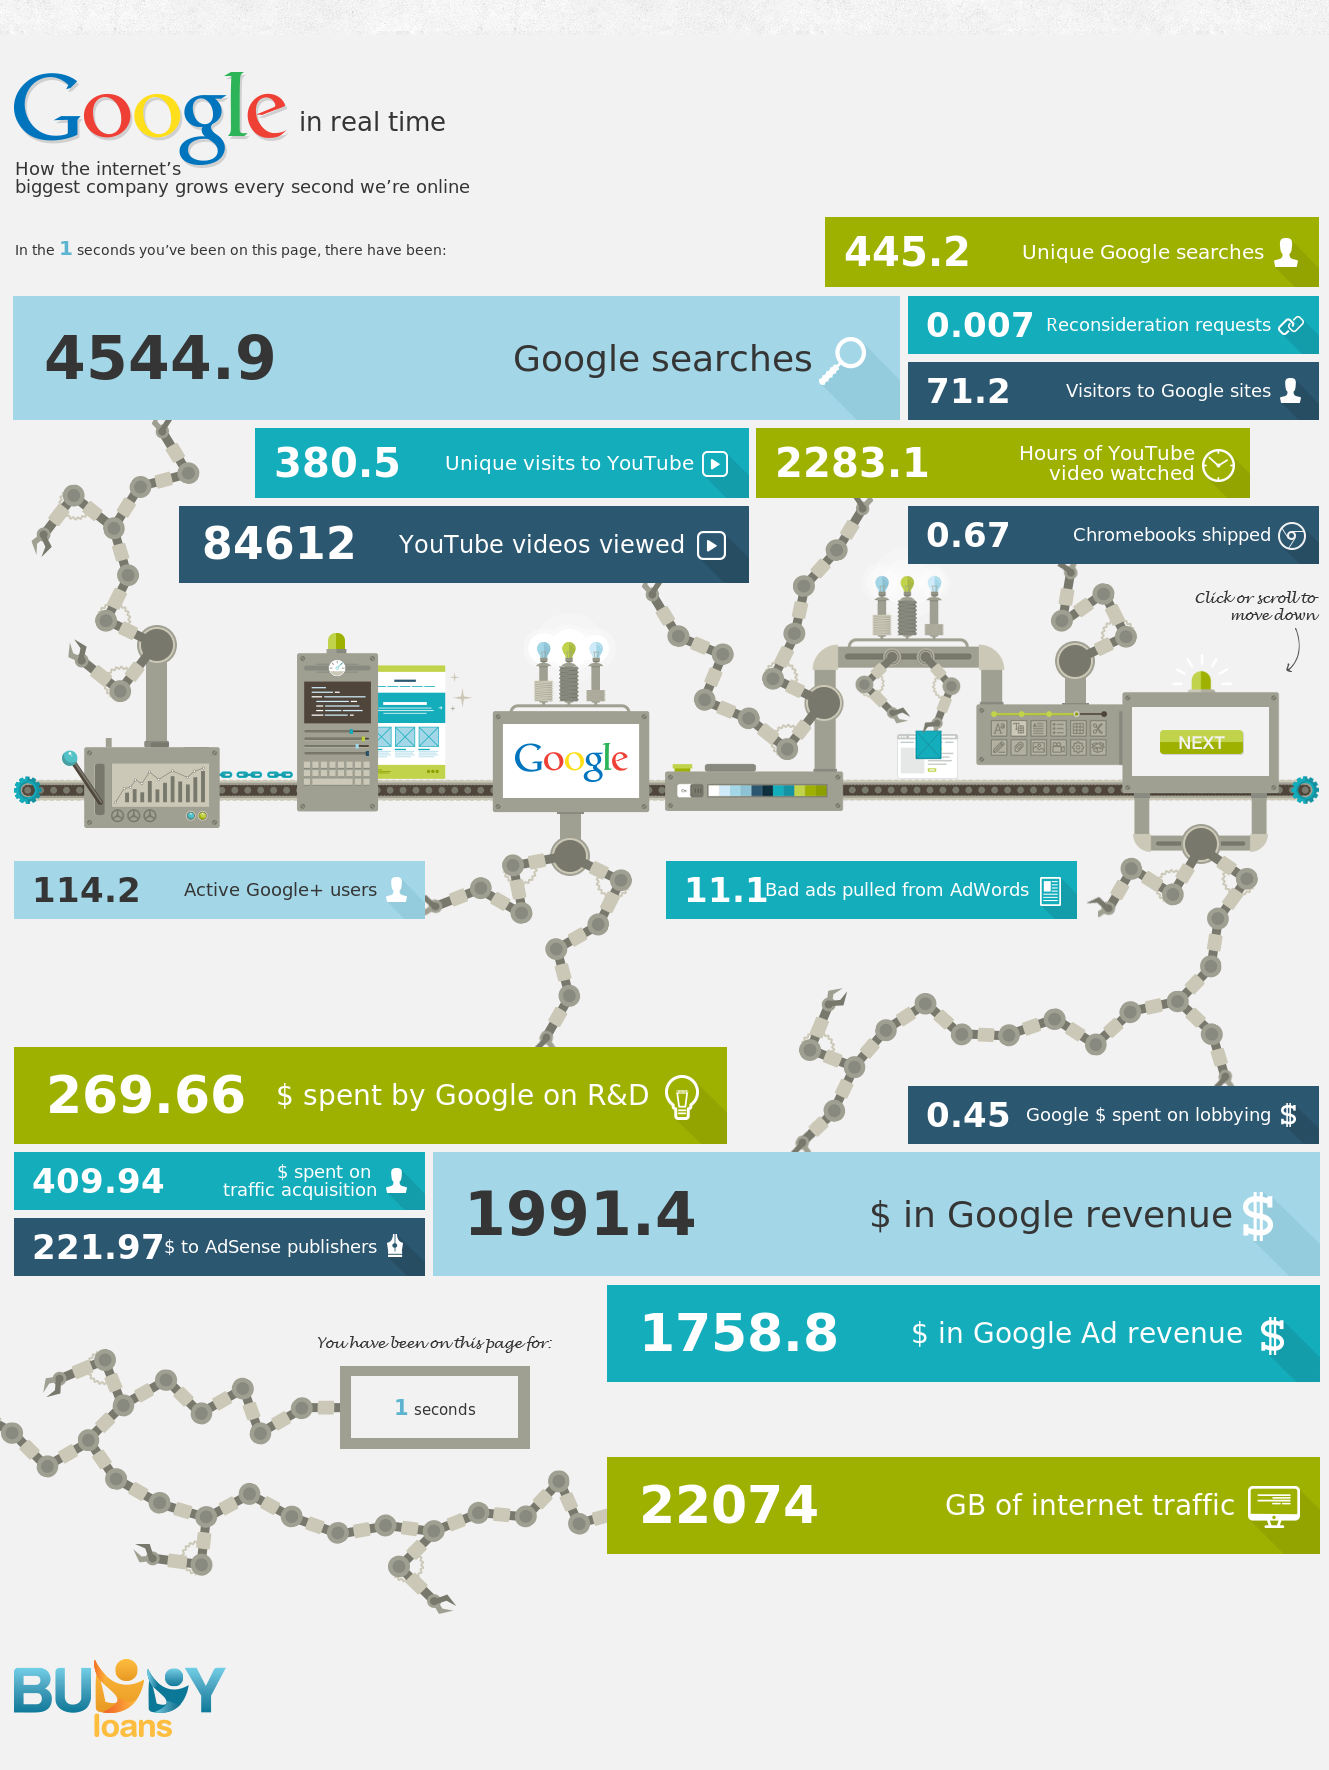 fascinating Googleplus and Google stats, you should know about. How Fast Google Make the Big Bucks? An Infographic Answer